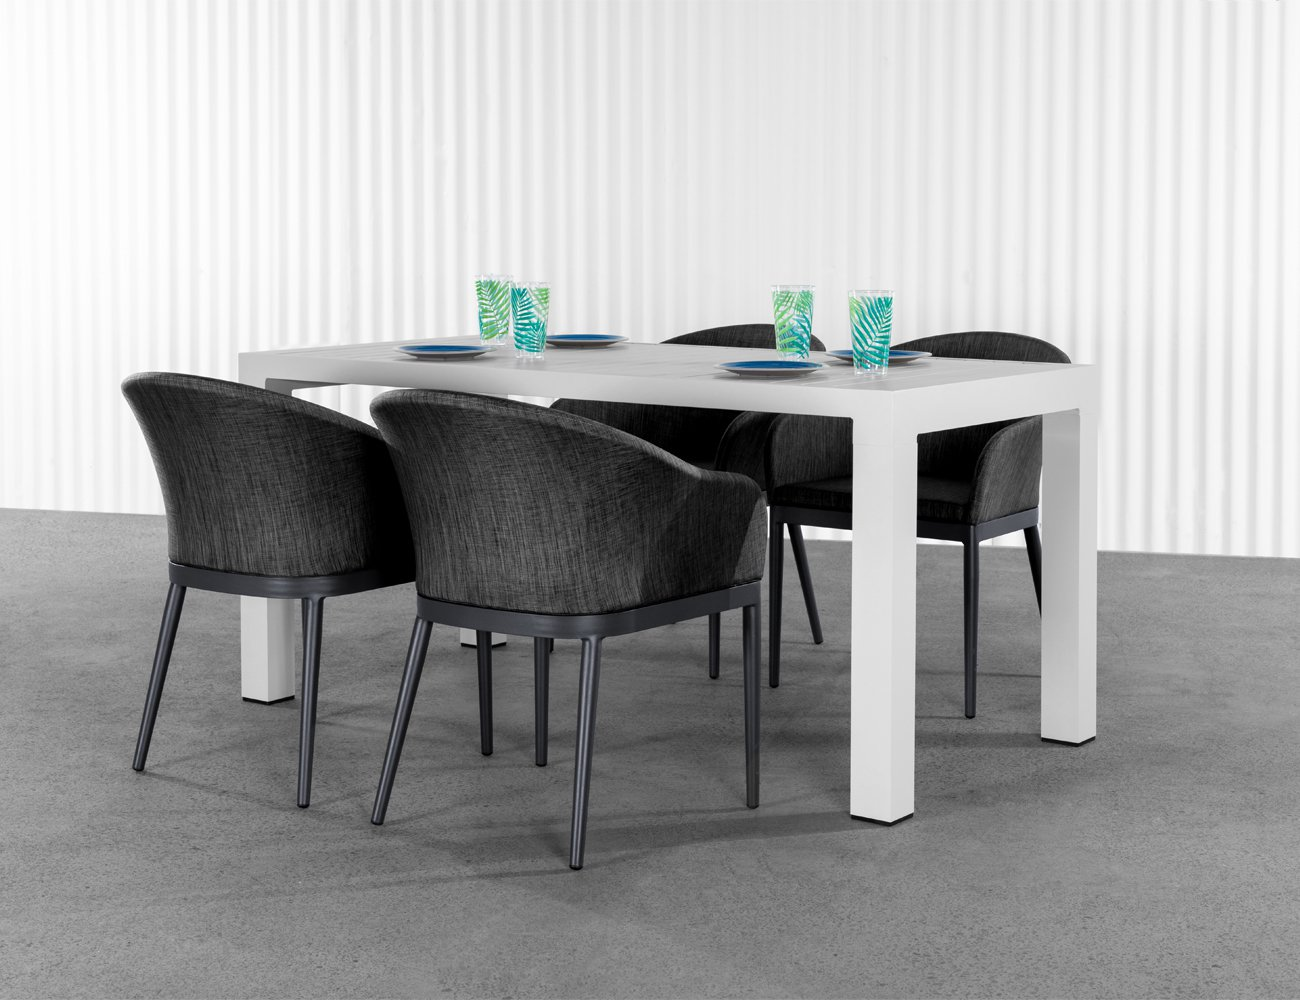 Cirrus Outdoor Table - White